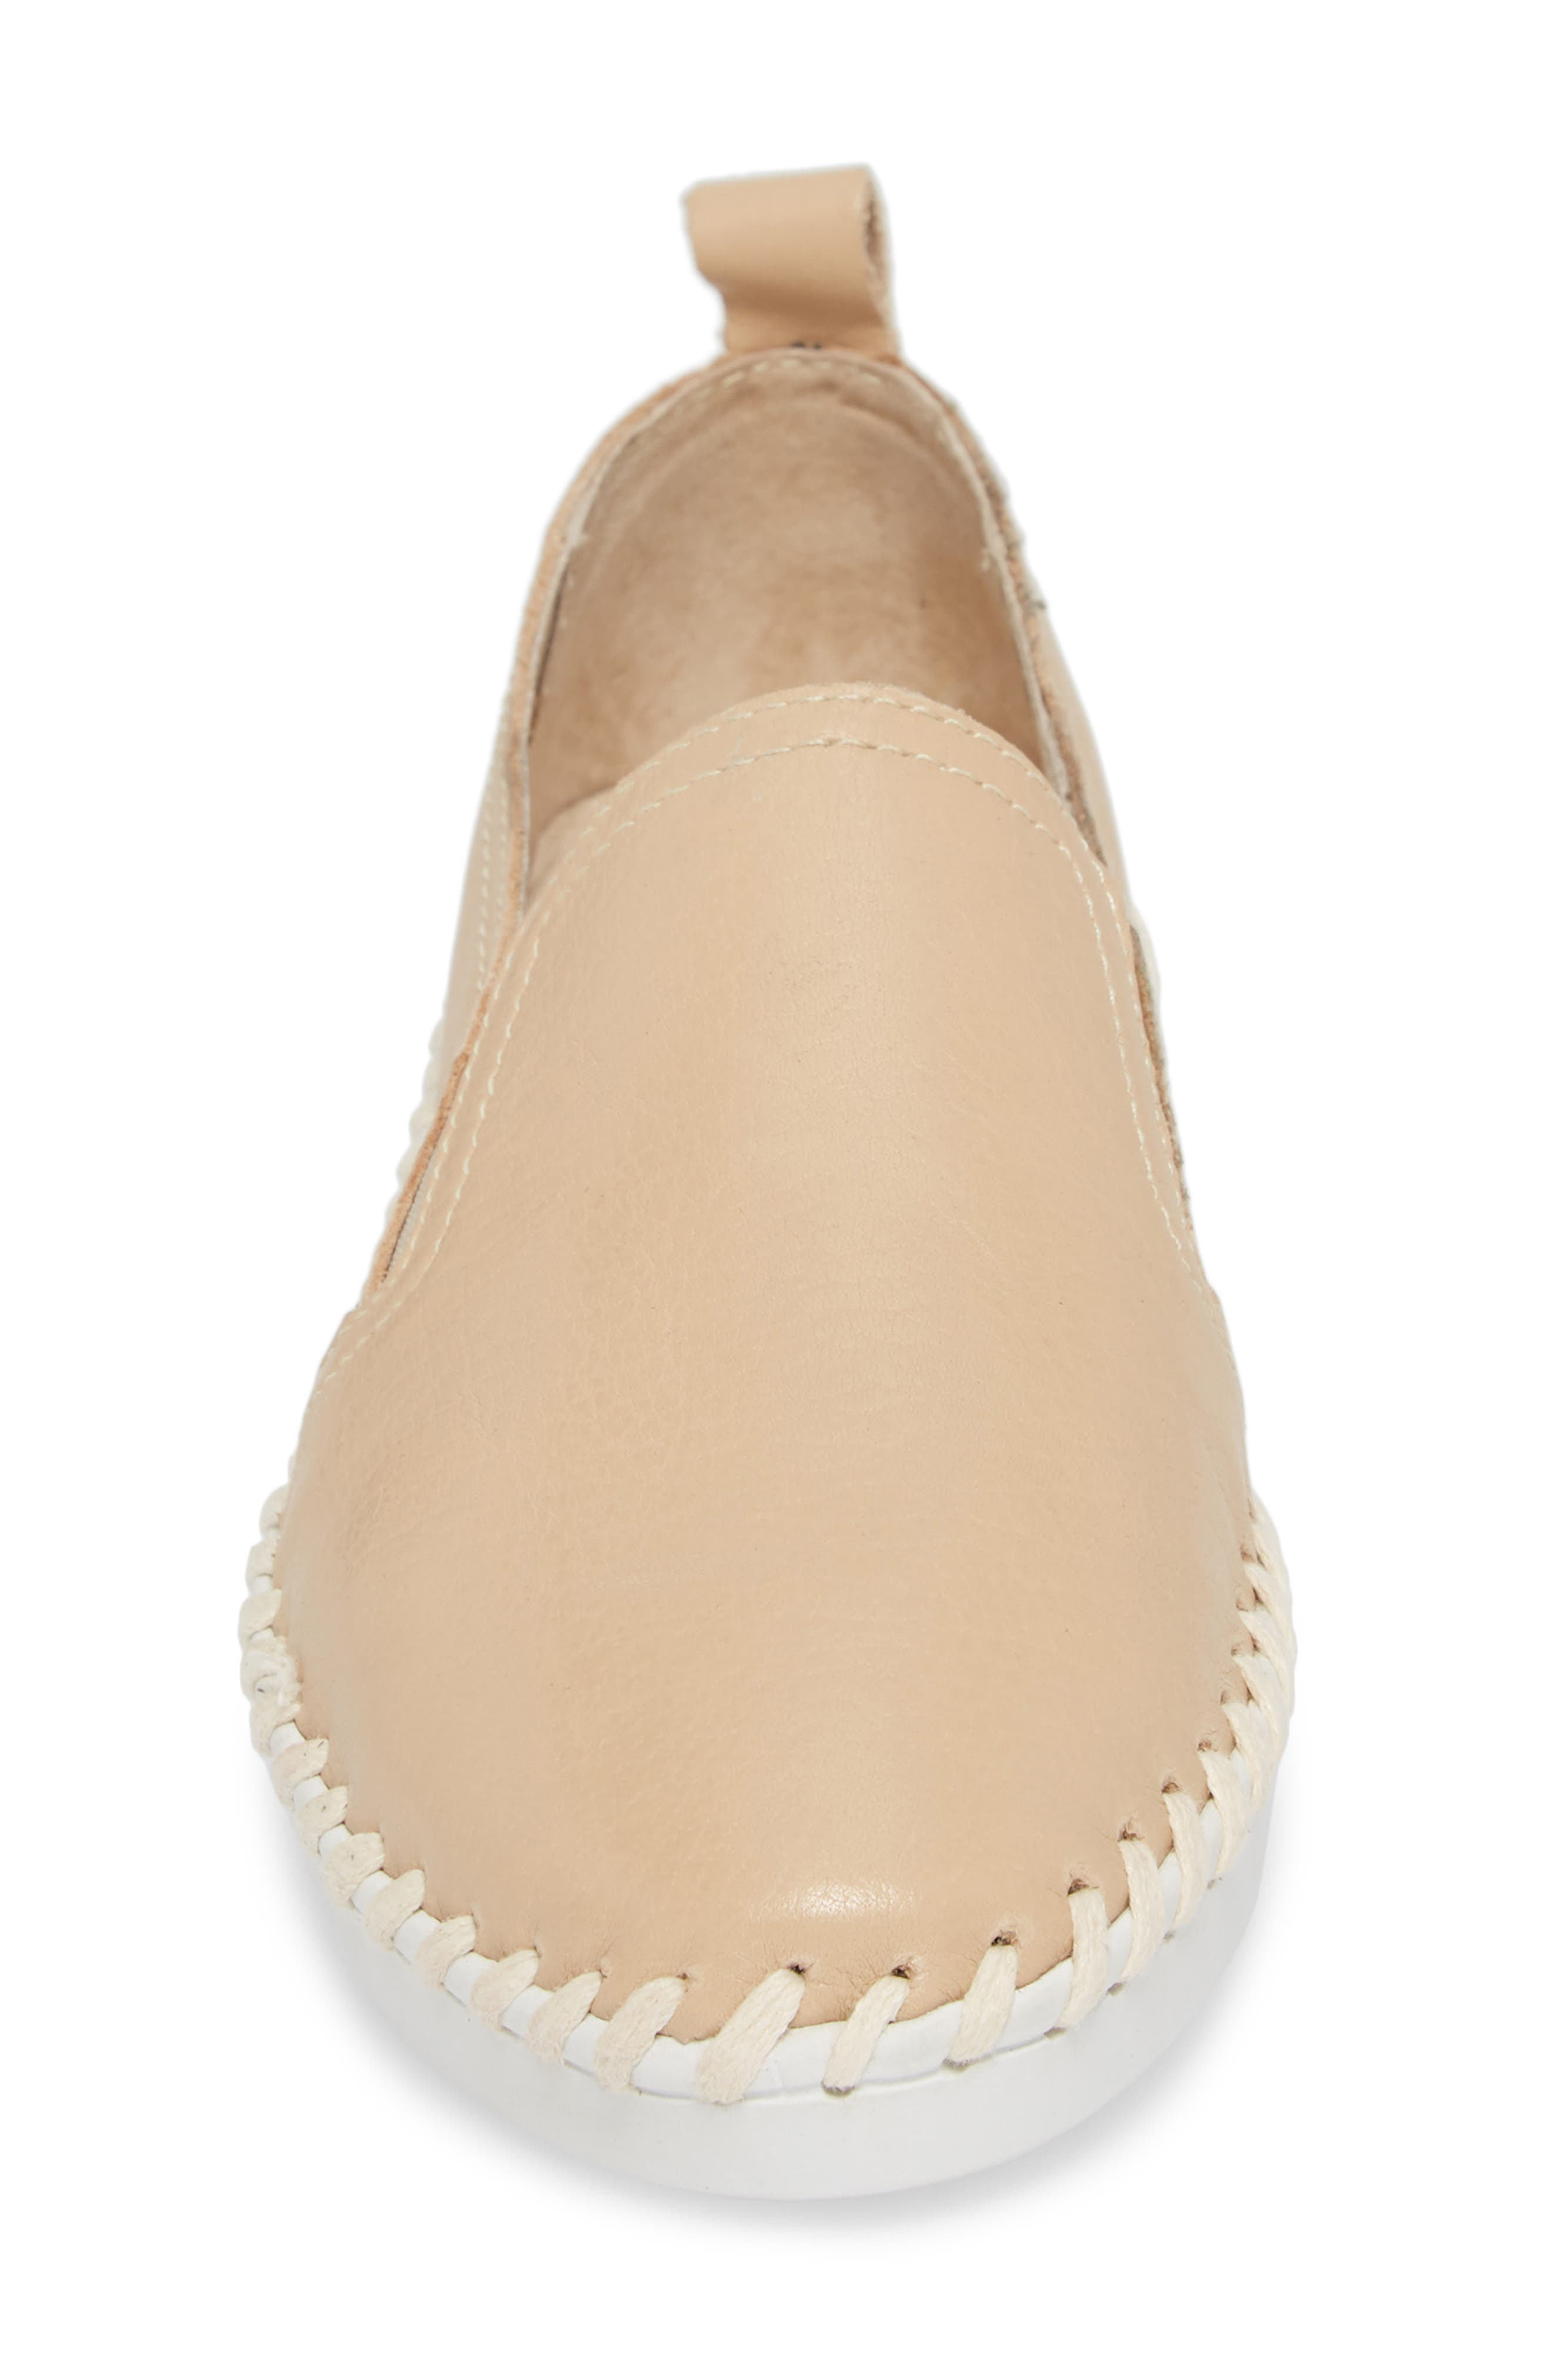 TW85 Slip-On Sneaker,                             Alternate thumbnail 4, color,                             NUDE LEATHER